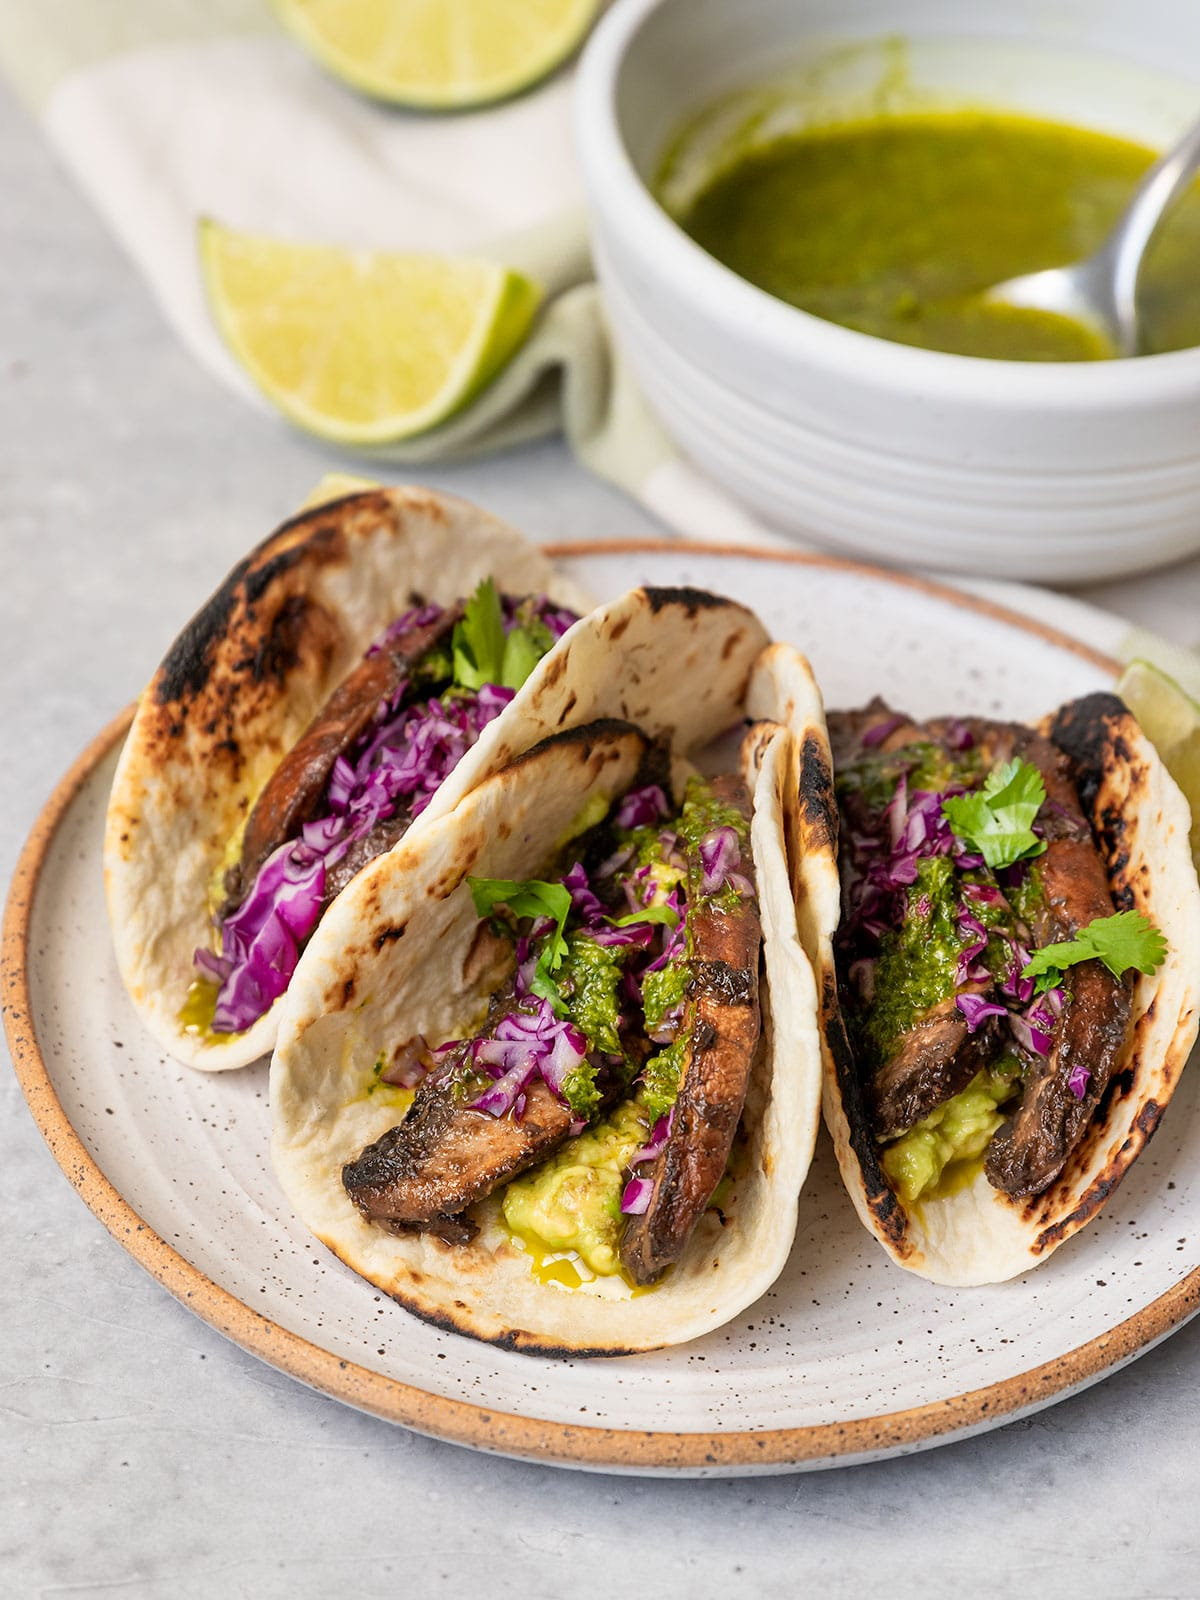 three tacos filled with portobello mushroom slices, avocado, chimichurri sauce, purple cabbage, and cilantro